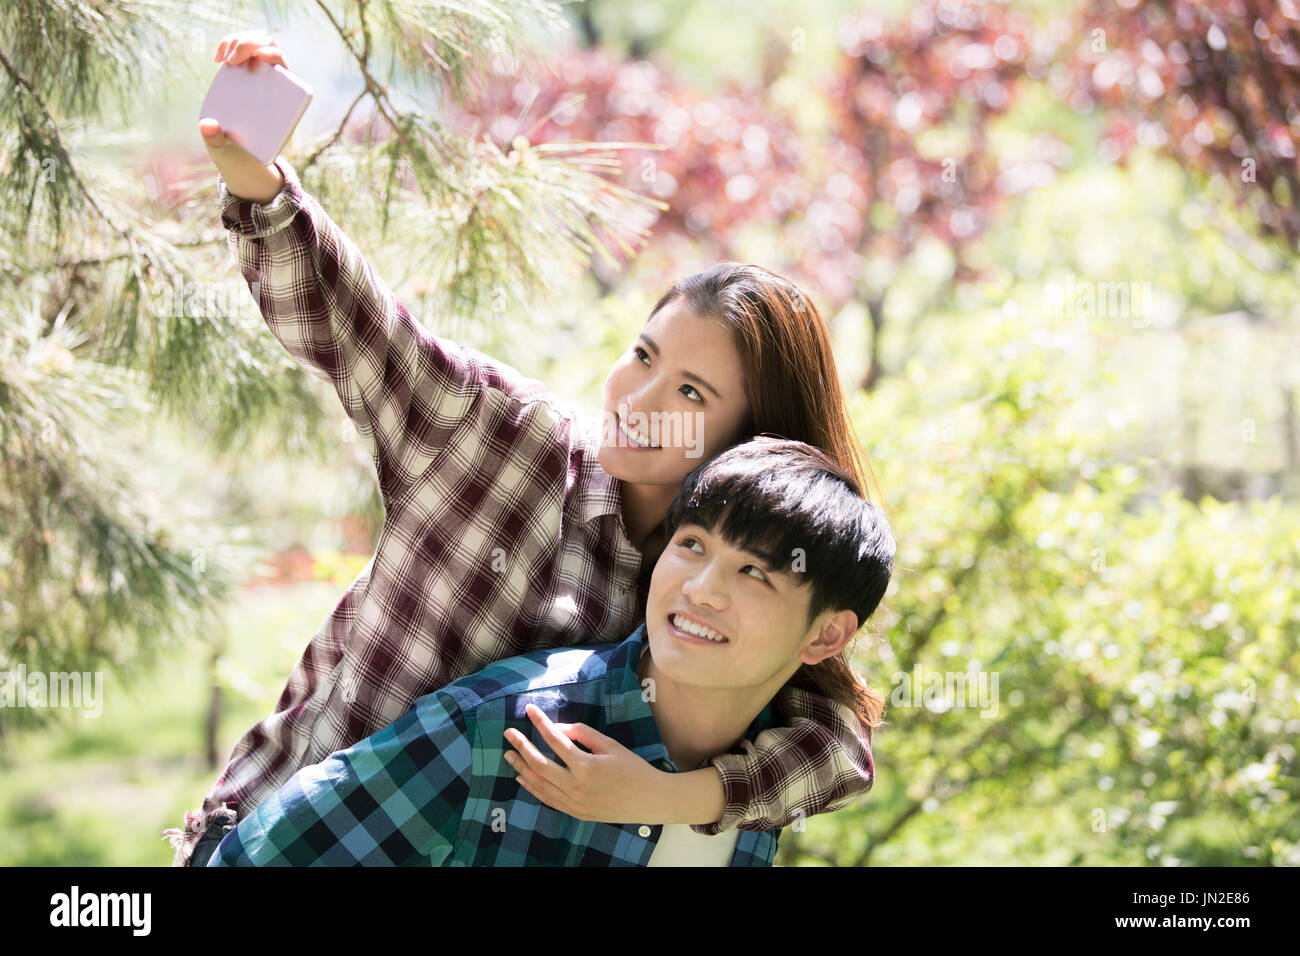 Young couple taking self portrait with mobile phone Photo Stock